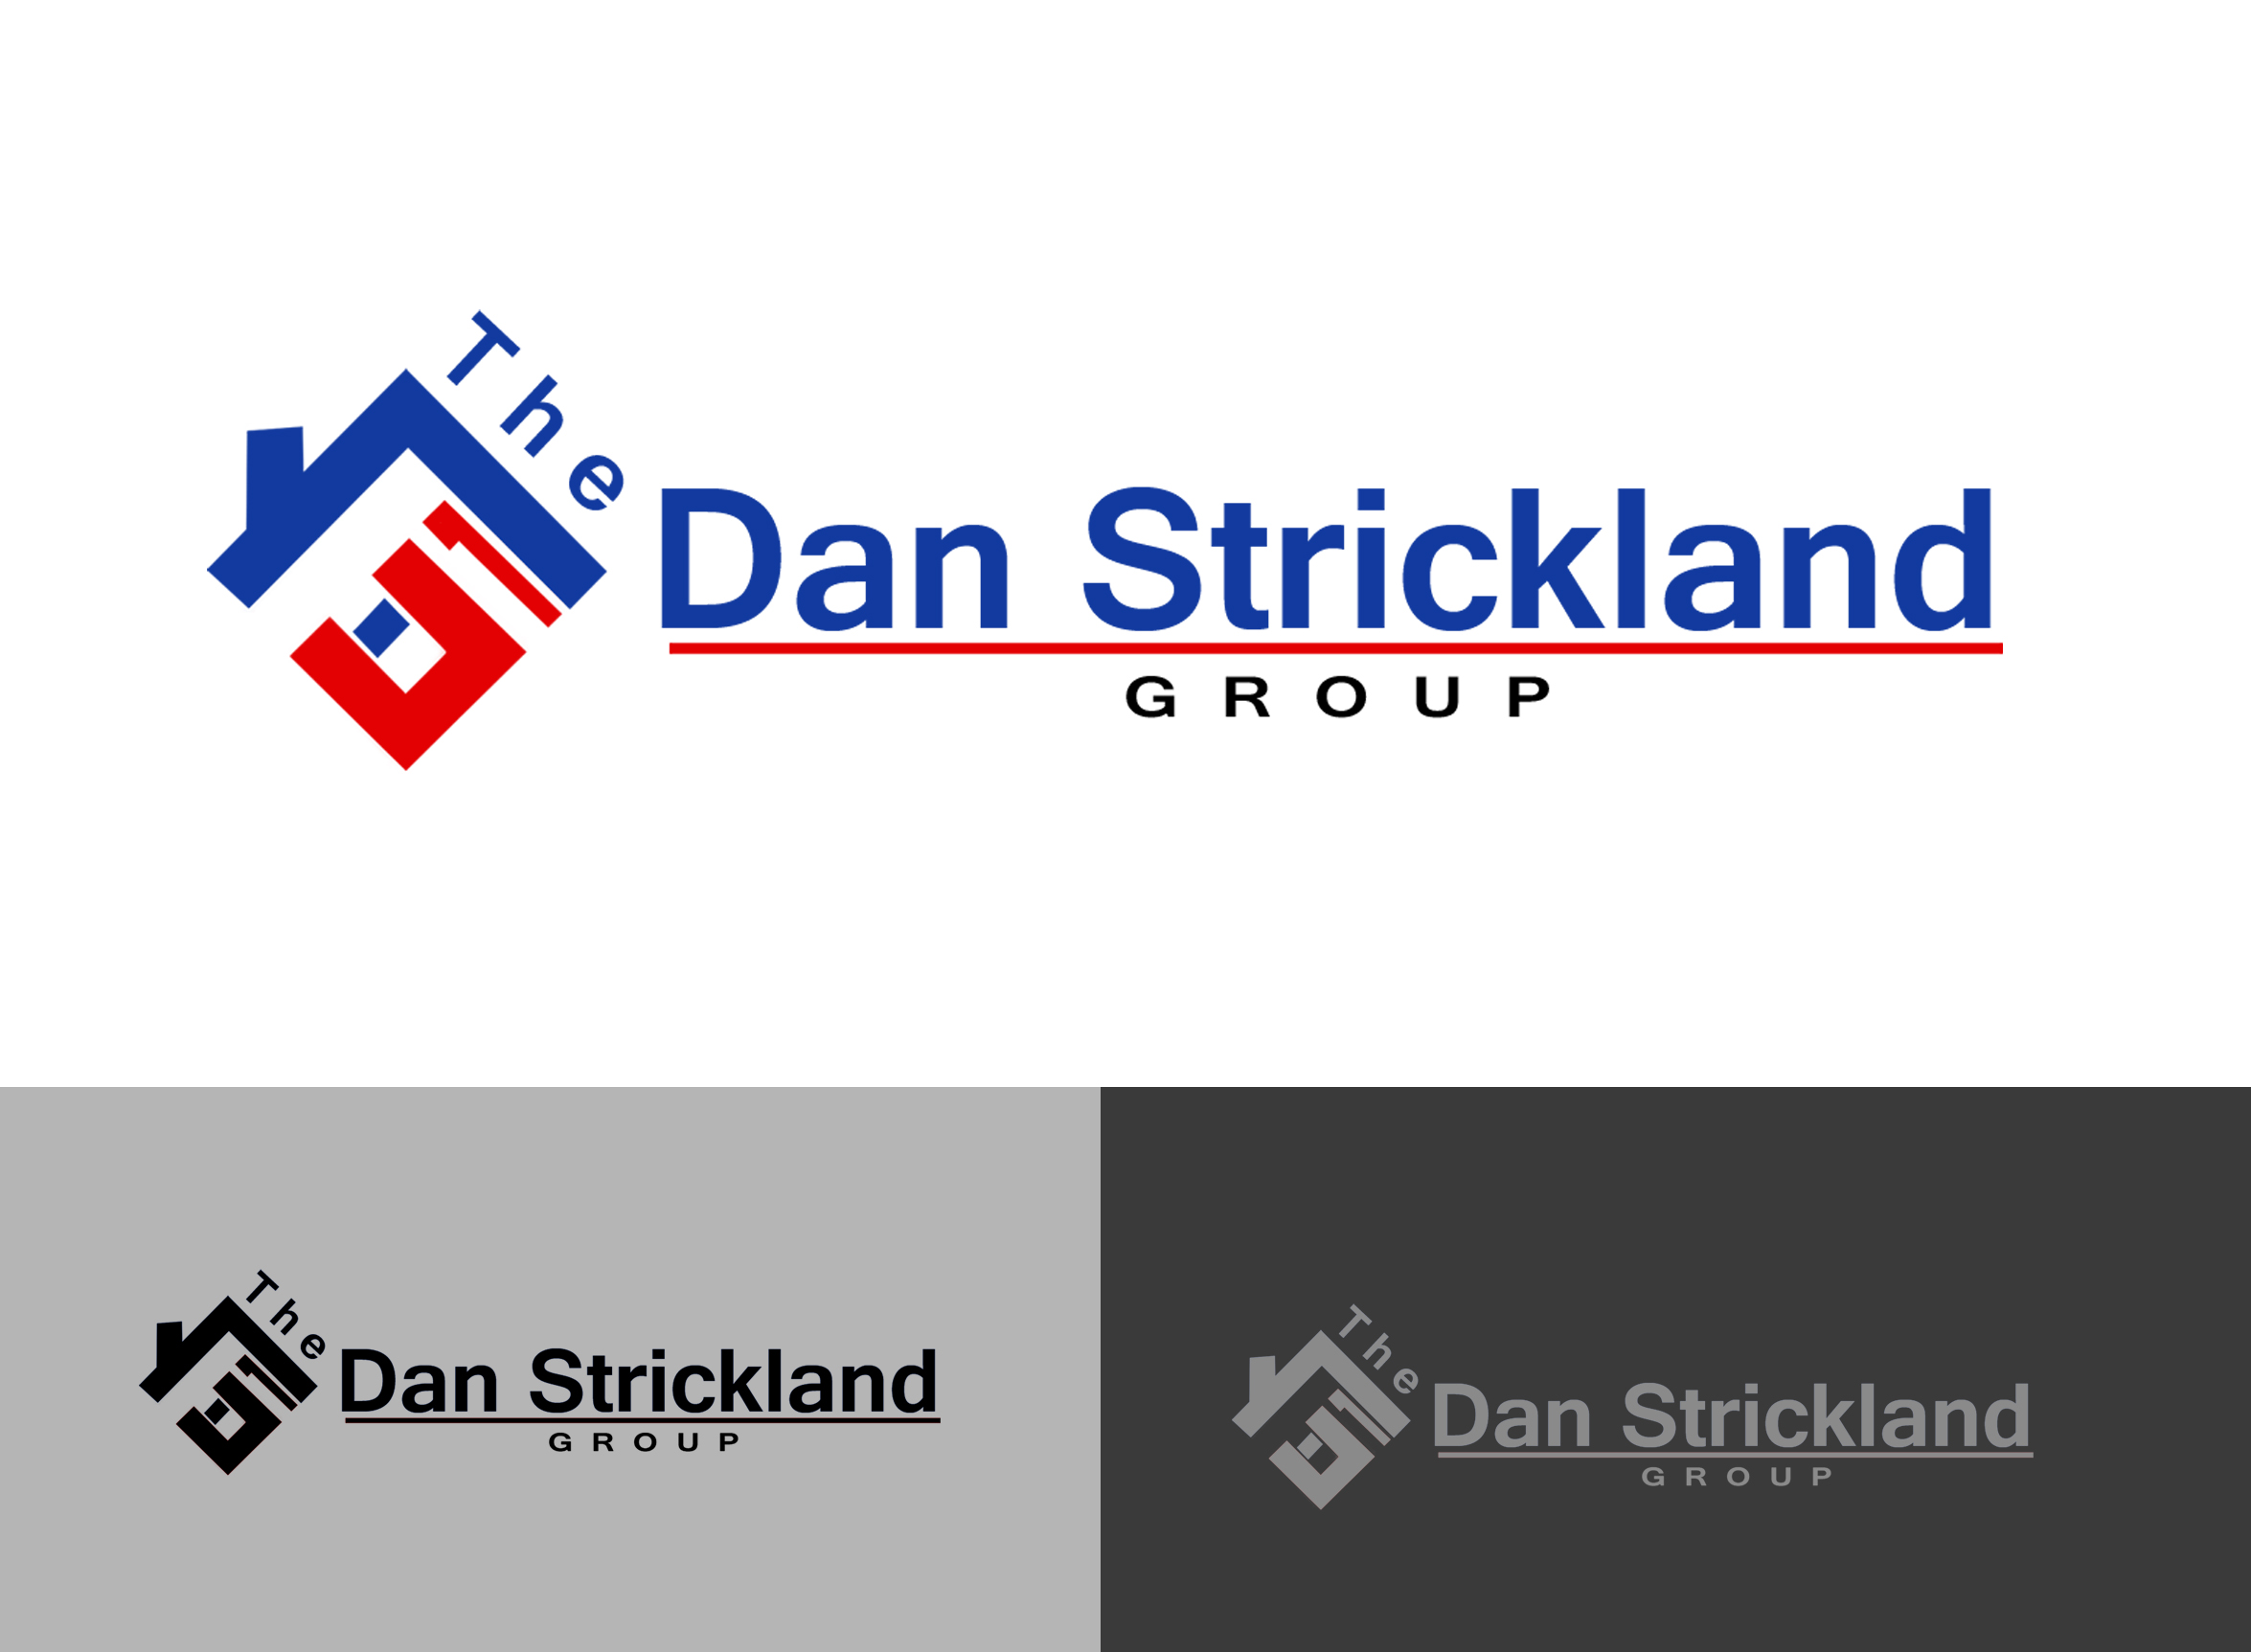 Logo Design by Jack Rajgor - Entry No. 234 in the Logo Design Contest Creative Logo Design for The Dan Strickland Group.